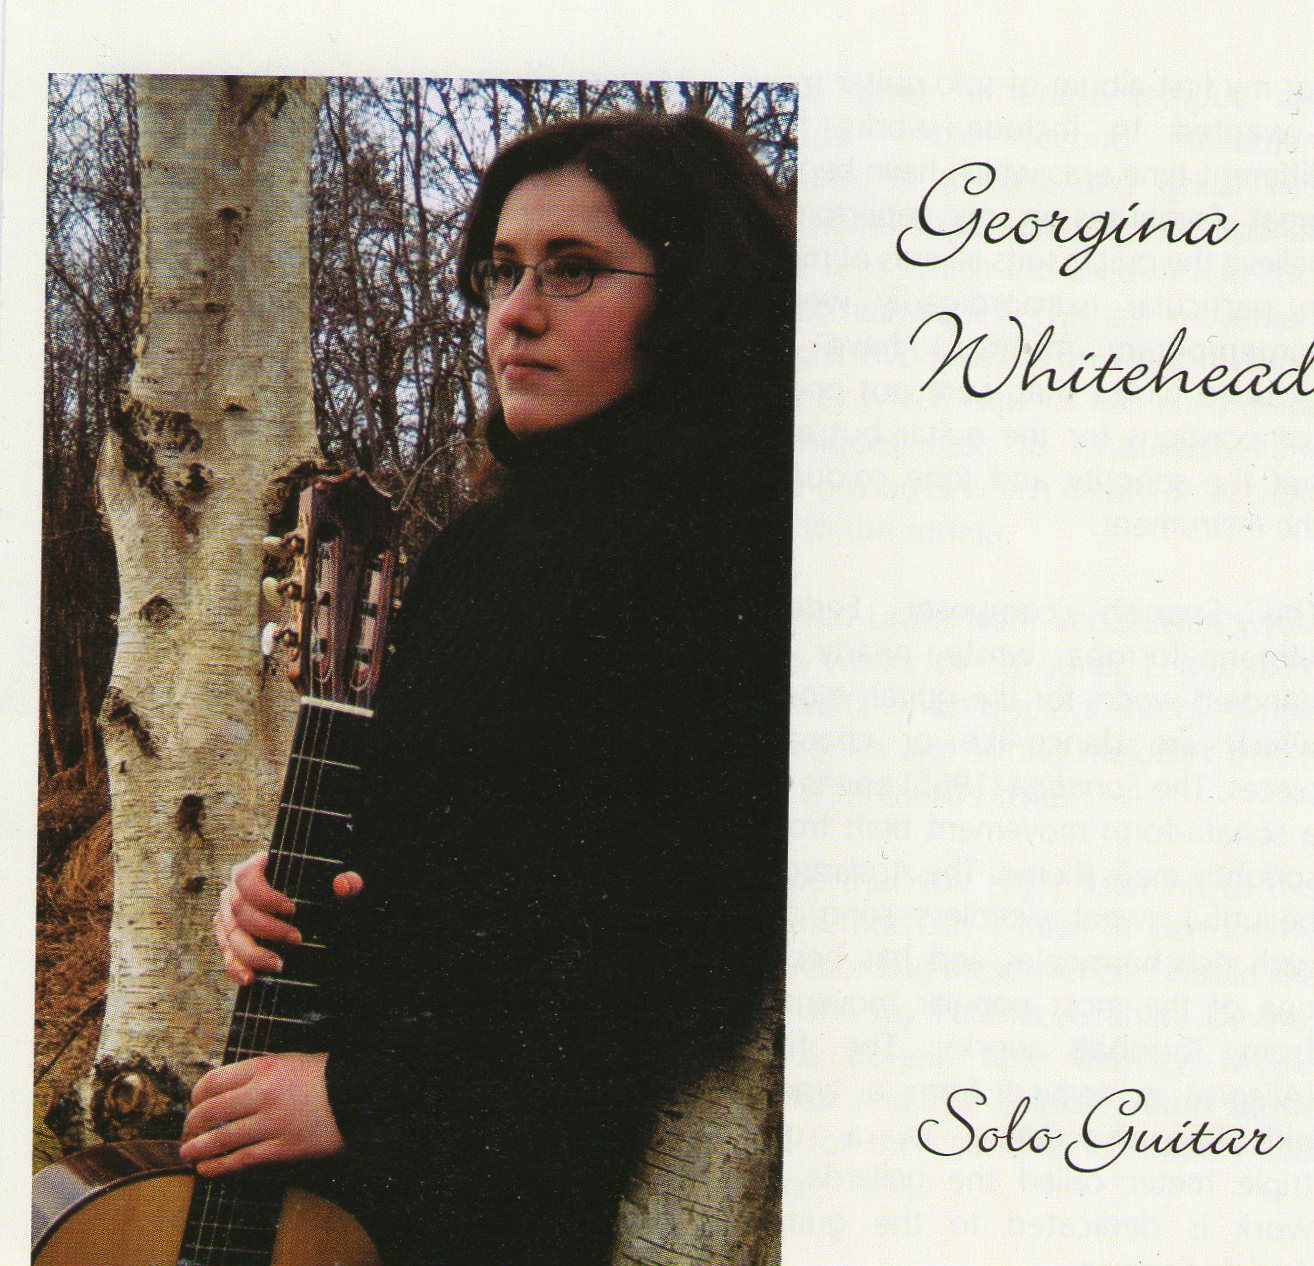 Georgina Whitehead - Solo Guitar CD